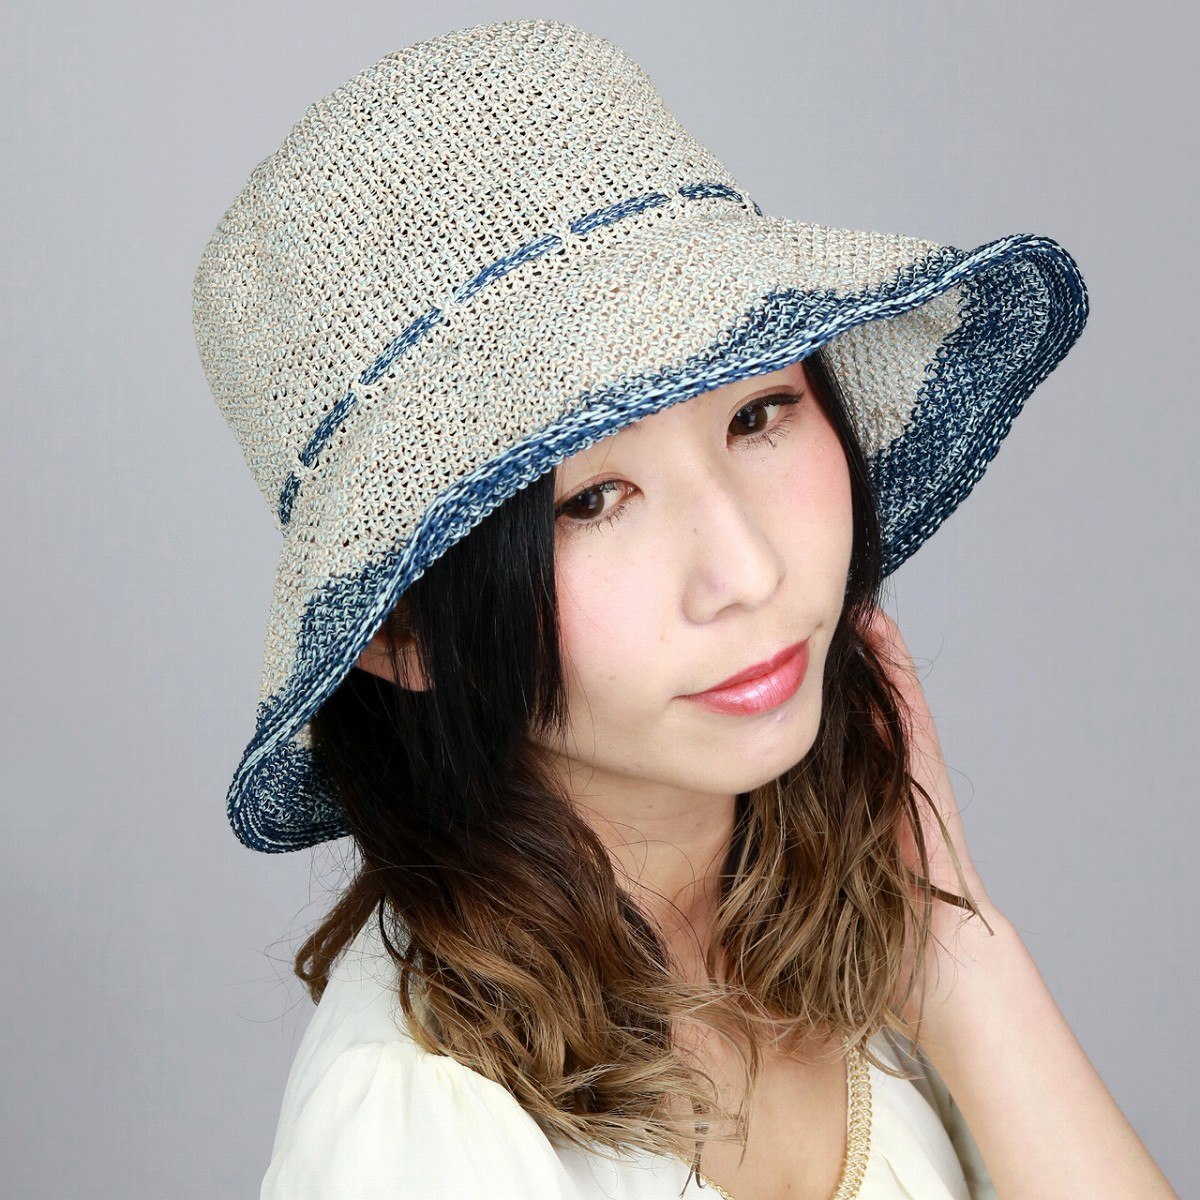 adad3485 daks Clocher Hat Womens Sun Hat linen spring/summer cool DAKS Hat  fashionable collar wide ...